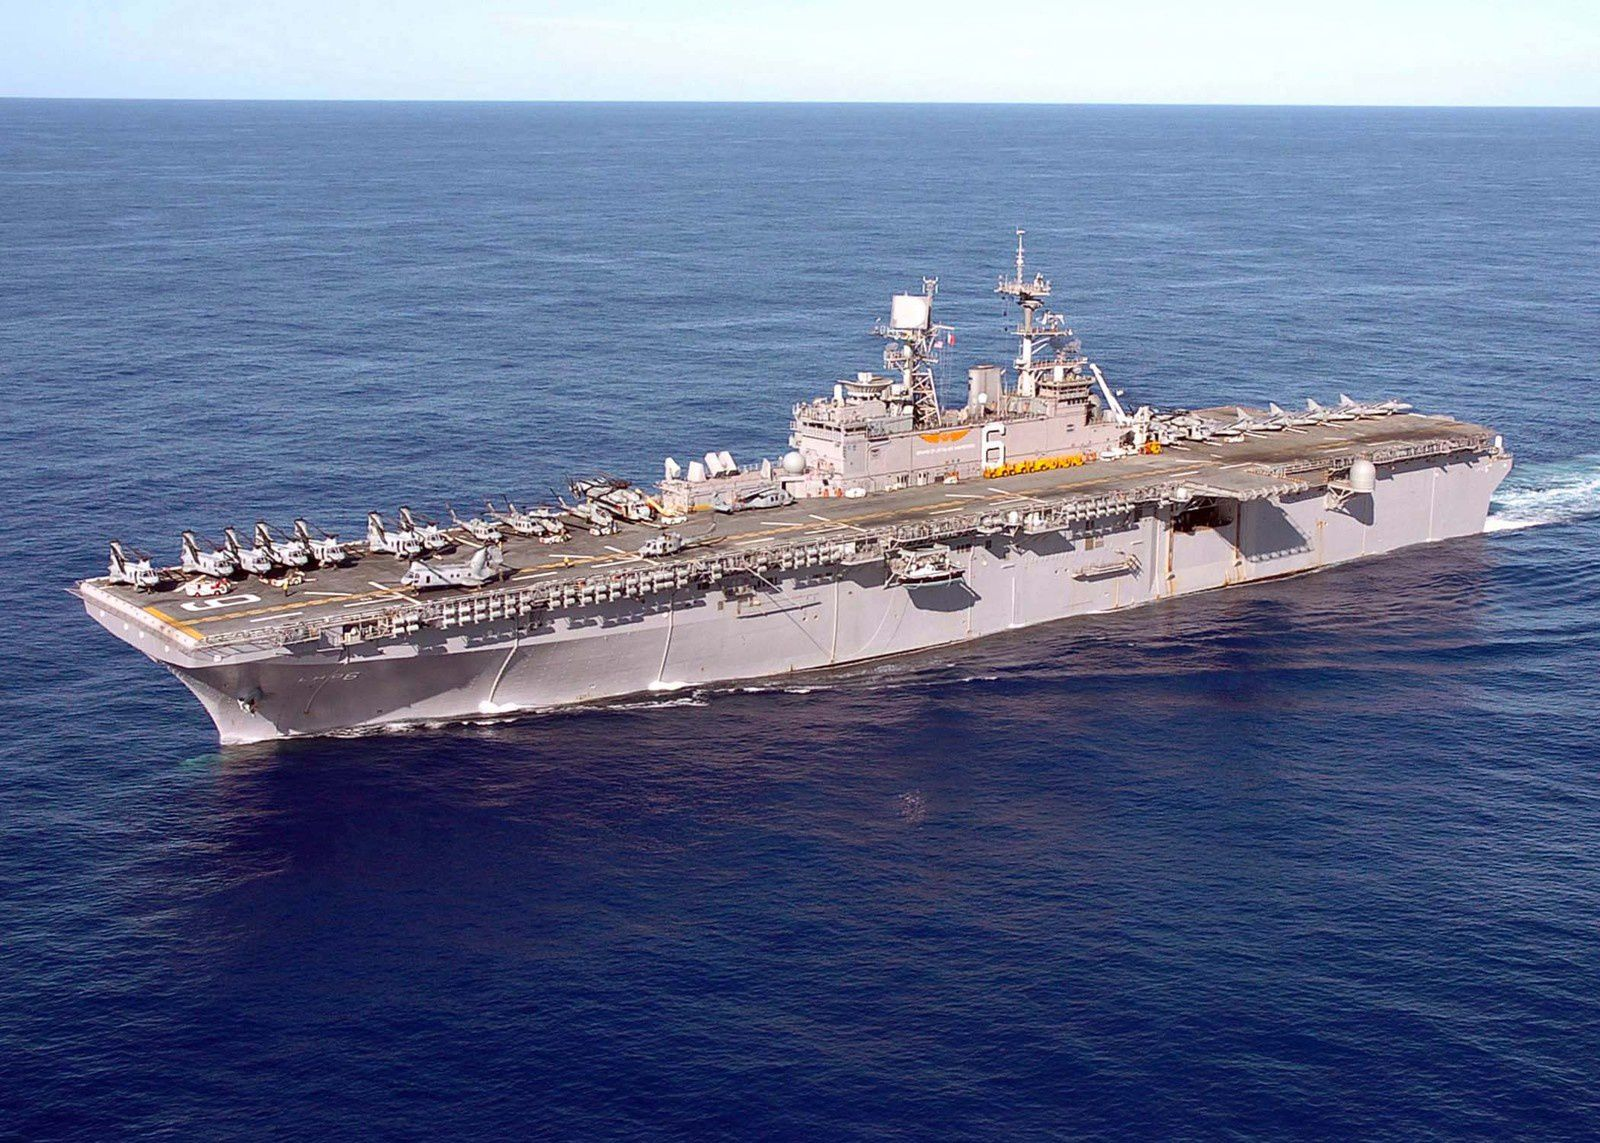 (Dec. 19, 2004) – The amphibious assault ship USS Bonhomme Richard (LHD 6) underway in the waters of Western Pacific Ocean. U.S. Navy photo by Photographer 3rd Class Matthew J. Kuhlman